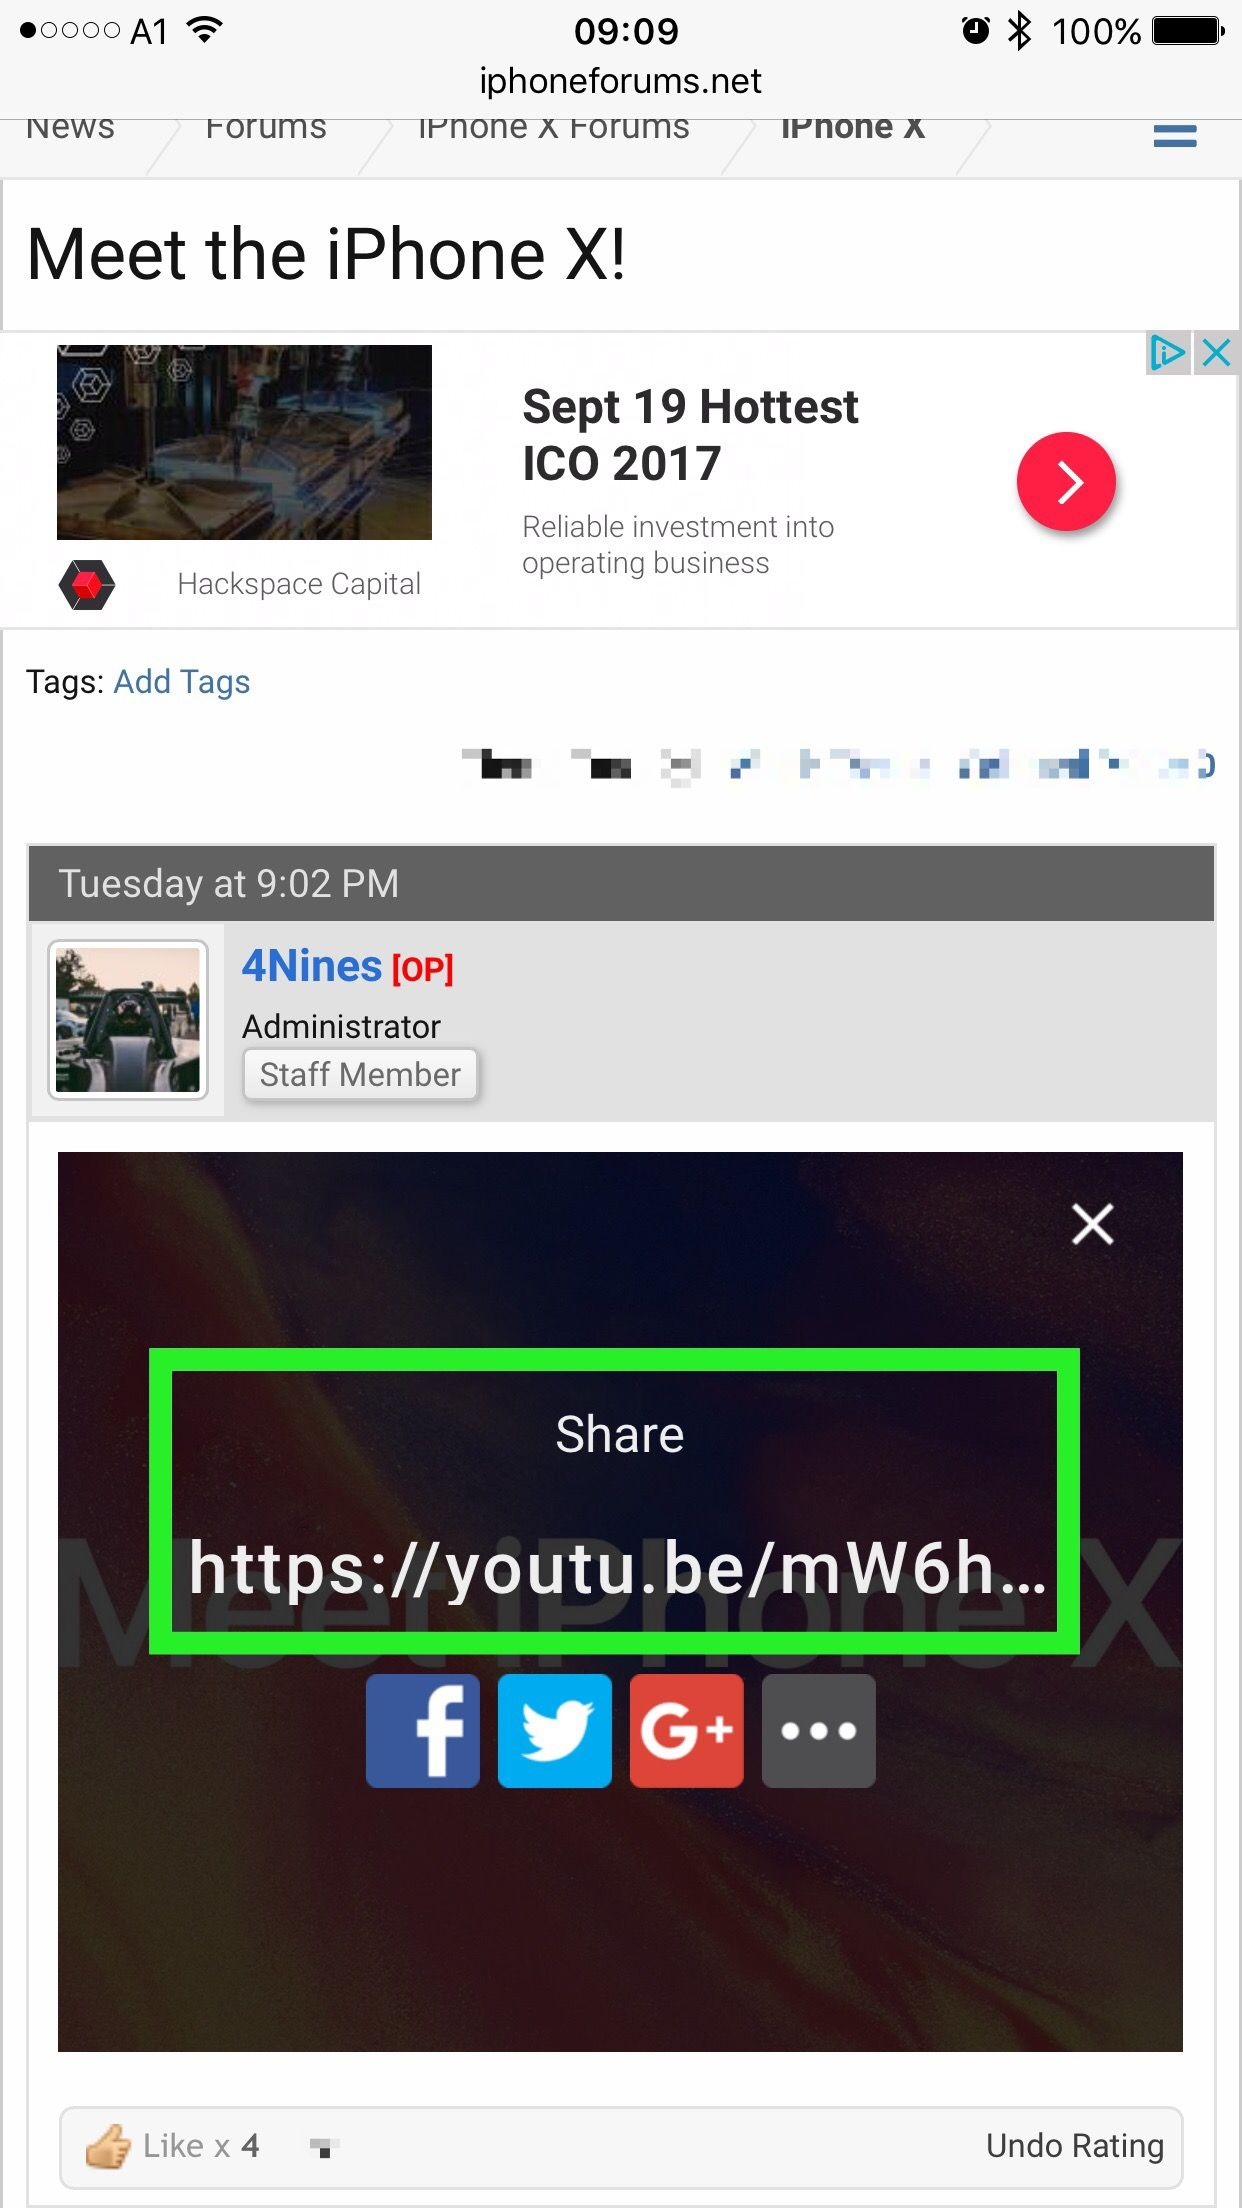 Chrome not opening youtube links in App, only in browser